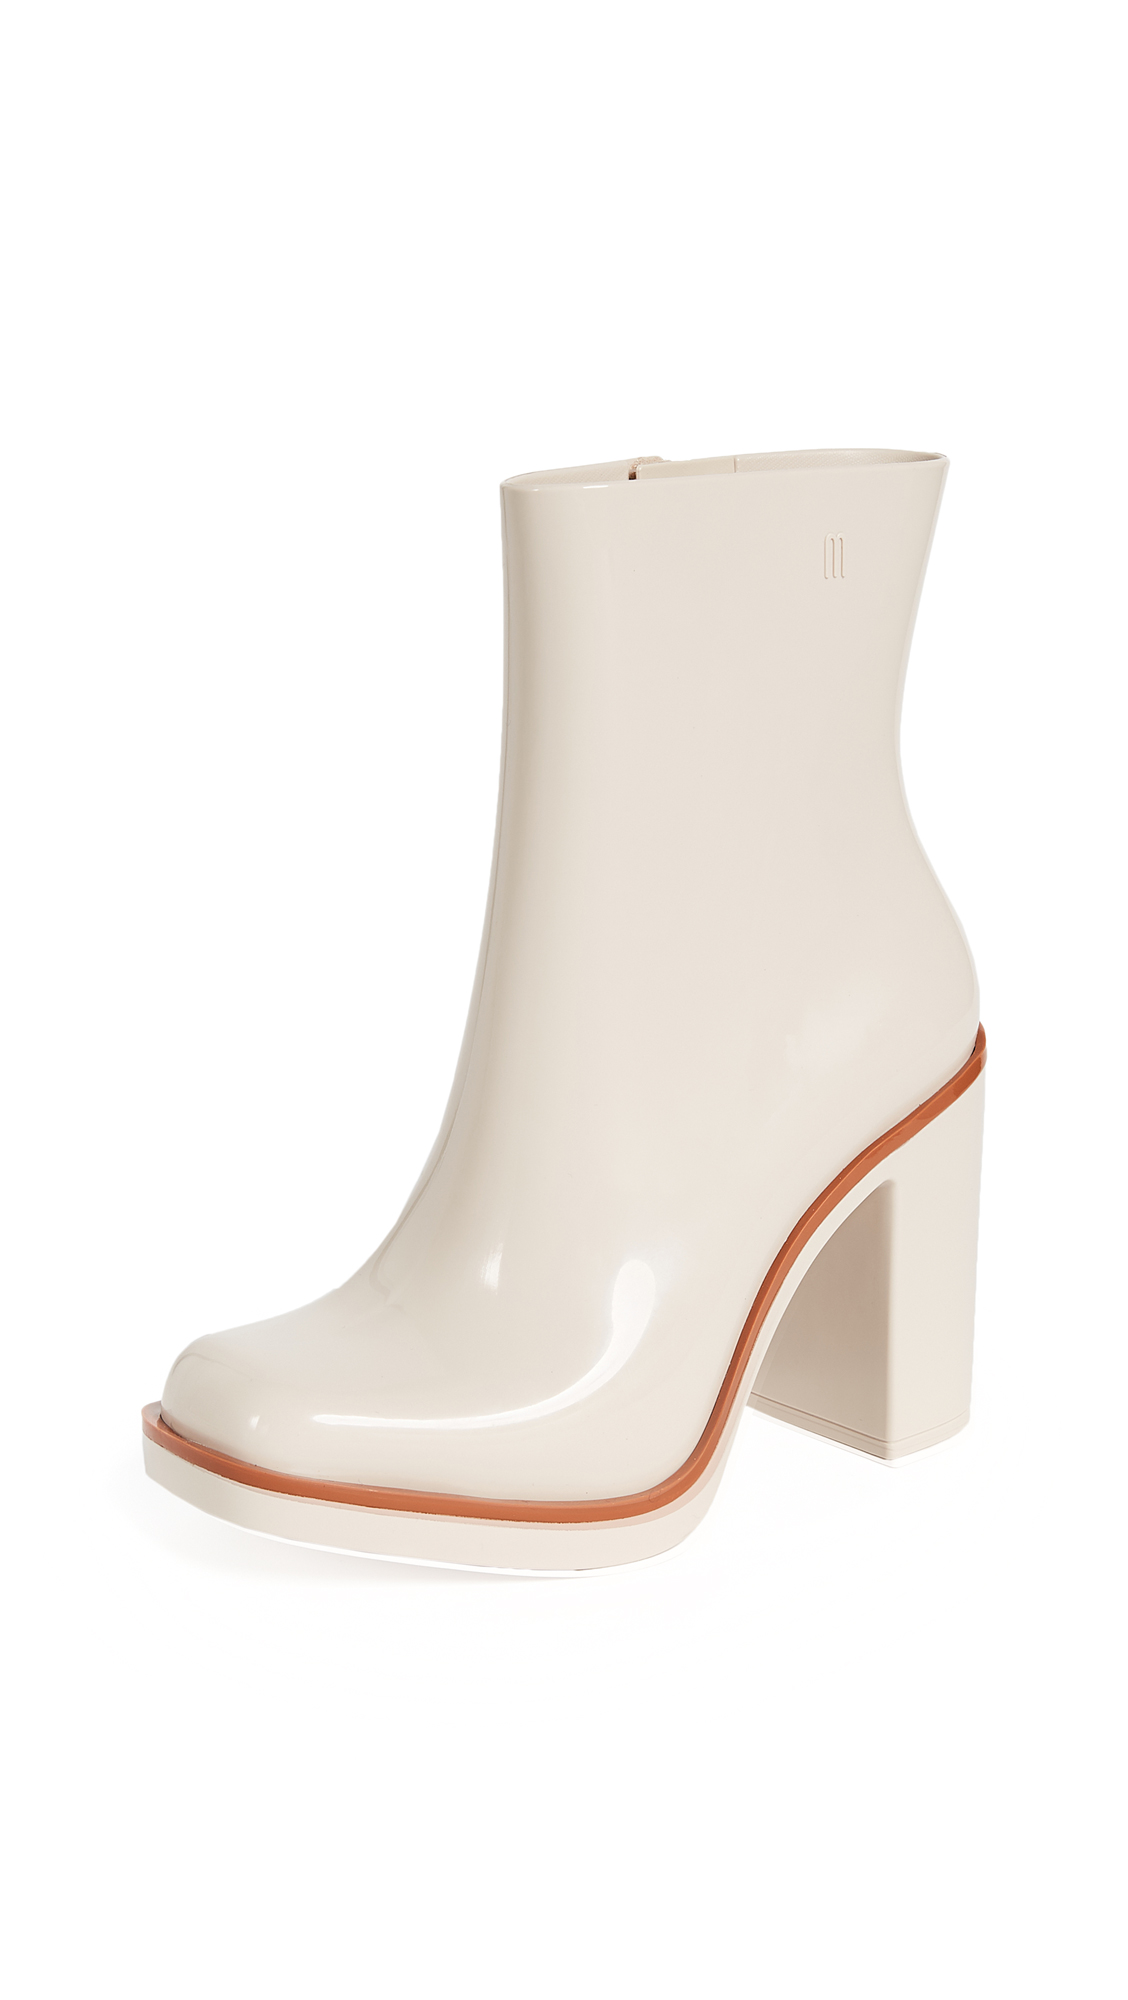 Melissa Classic Chunky Heel Boots - Nude/Brown